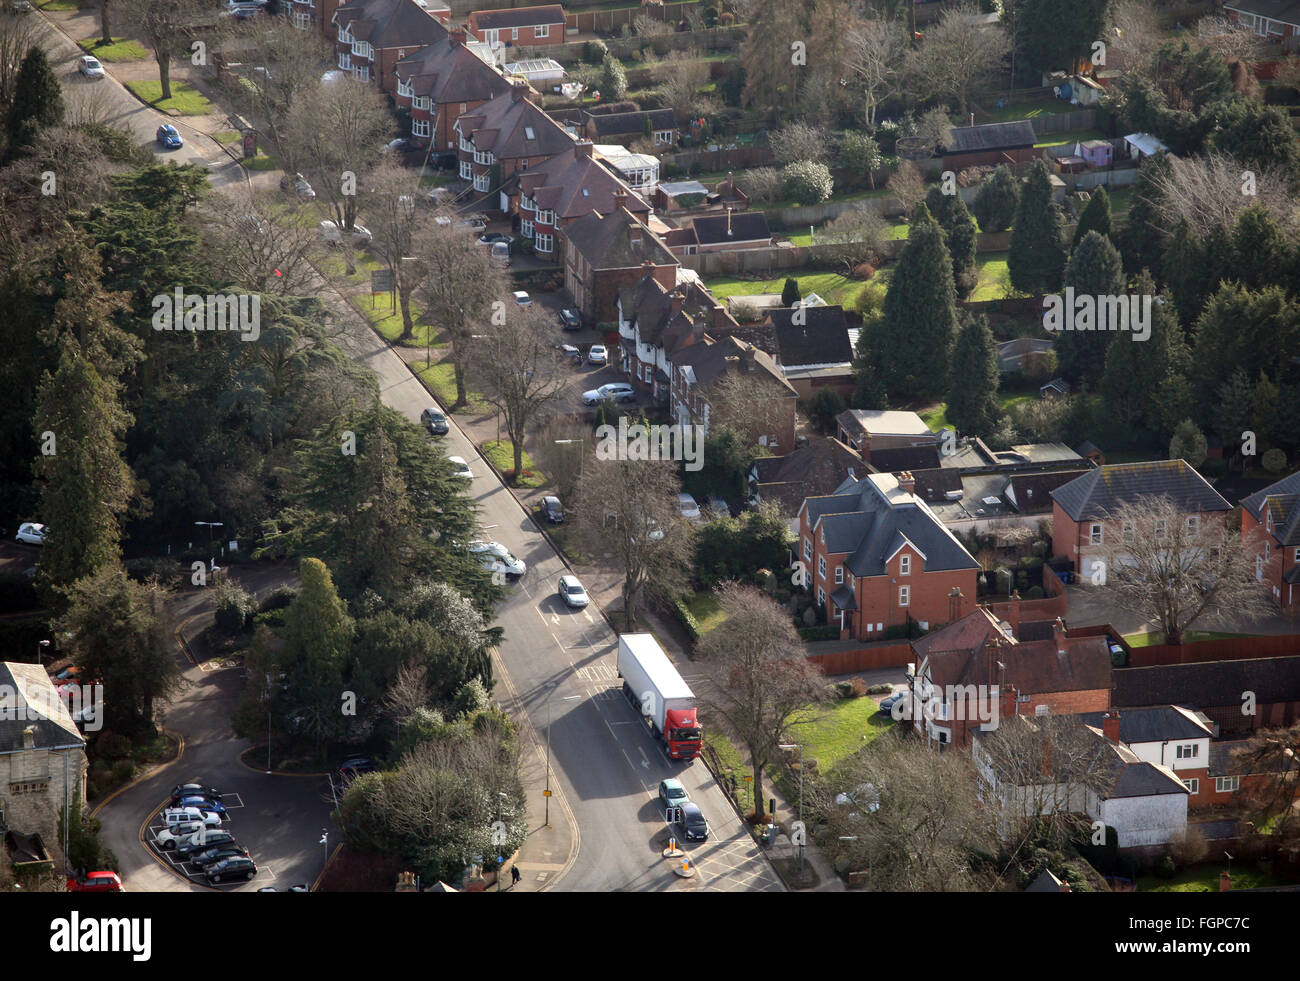 aerial view of a typical domestic suburban middle class English street in Banbury, Oxfordshire, UK Stock Photo